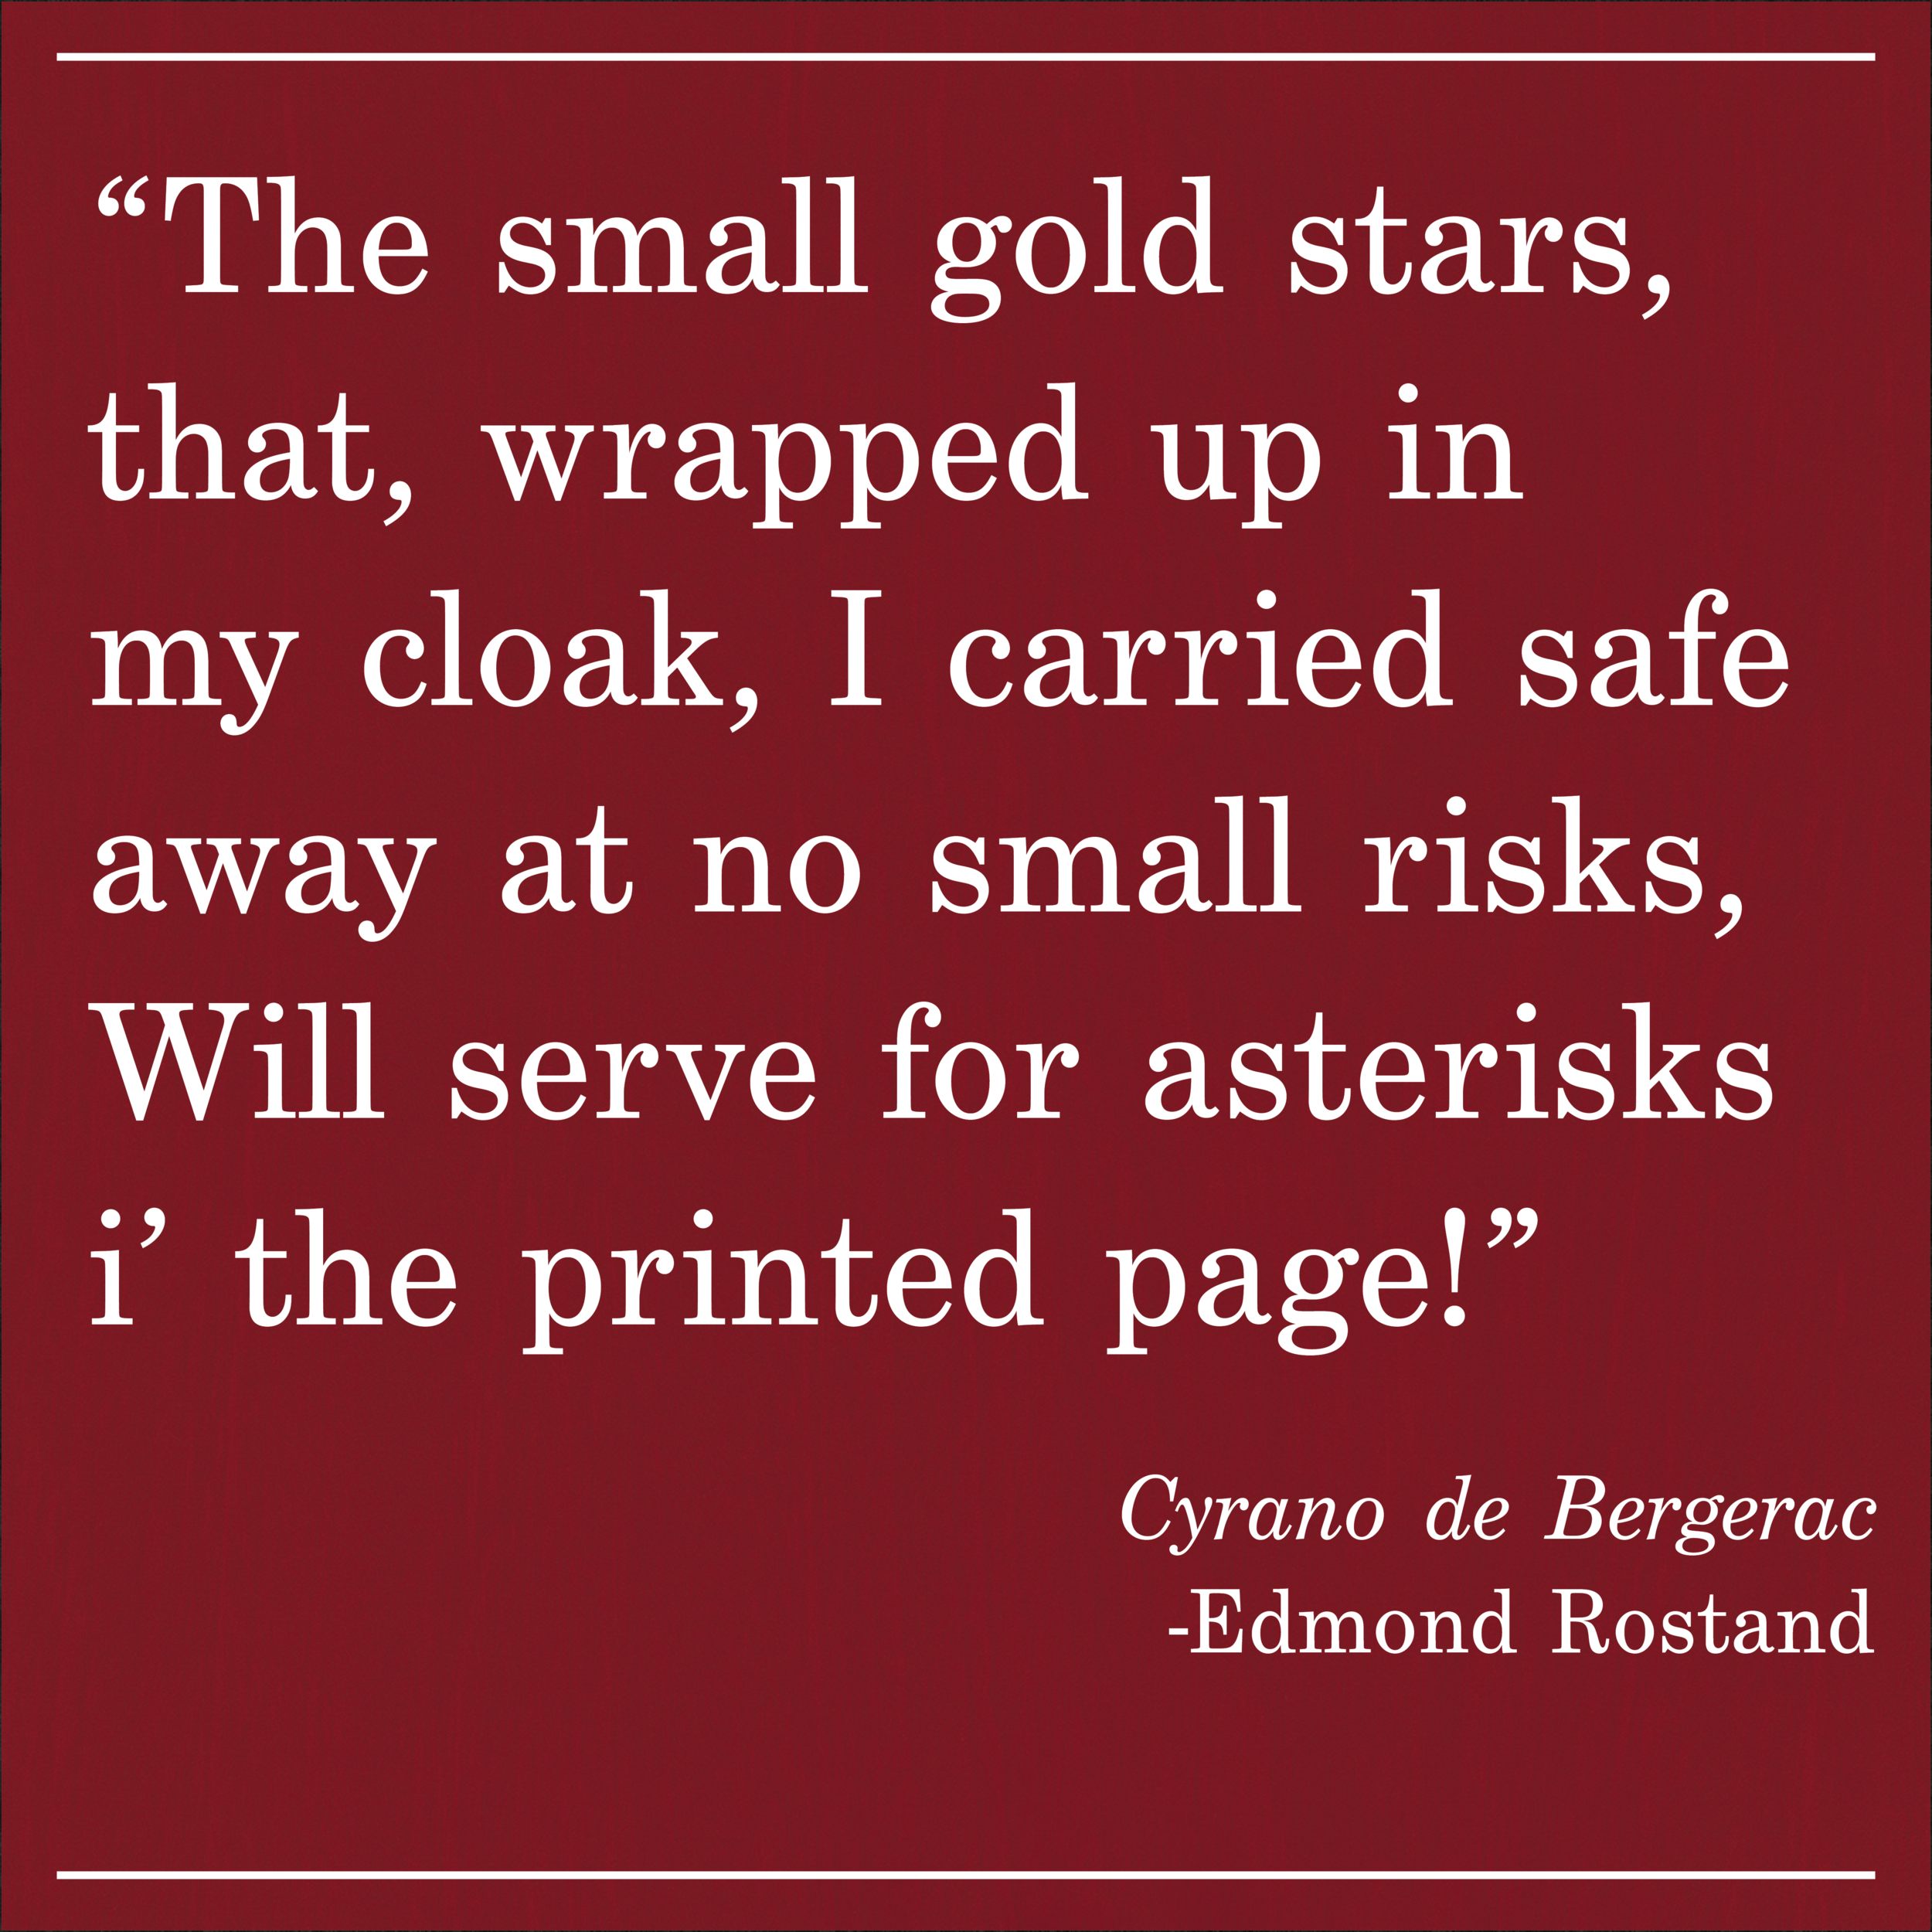 Daily Quote Cyrano de Bergerac by Edmond Rostand